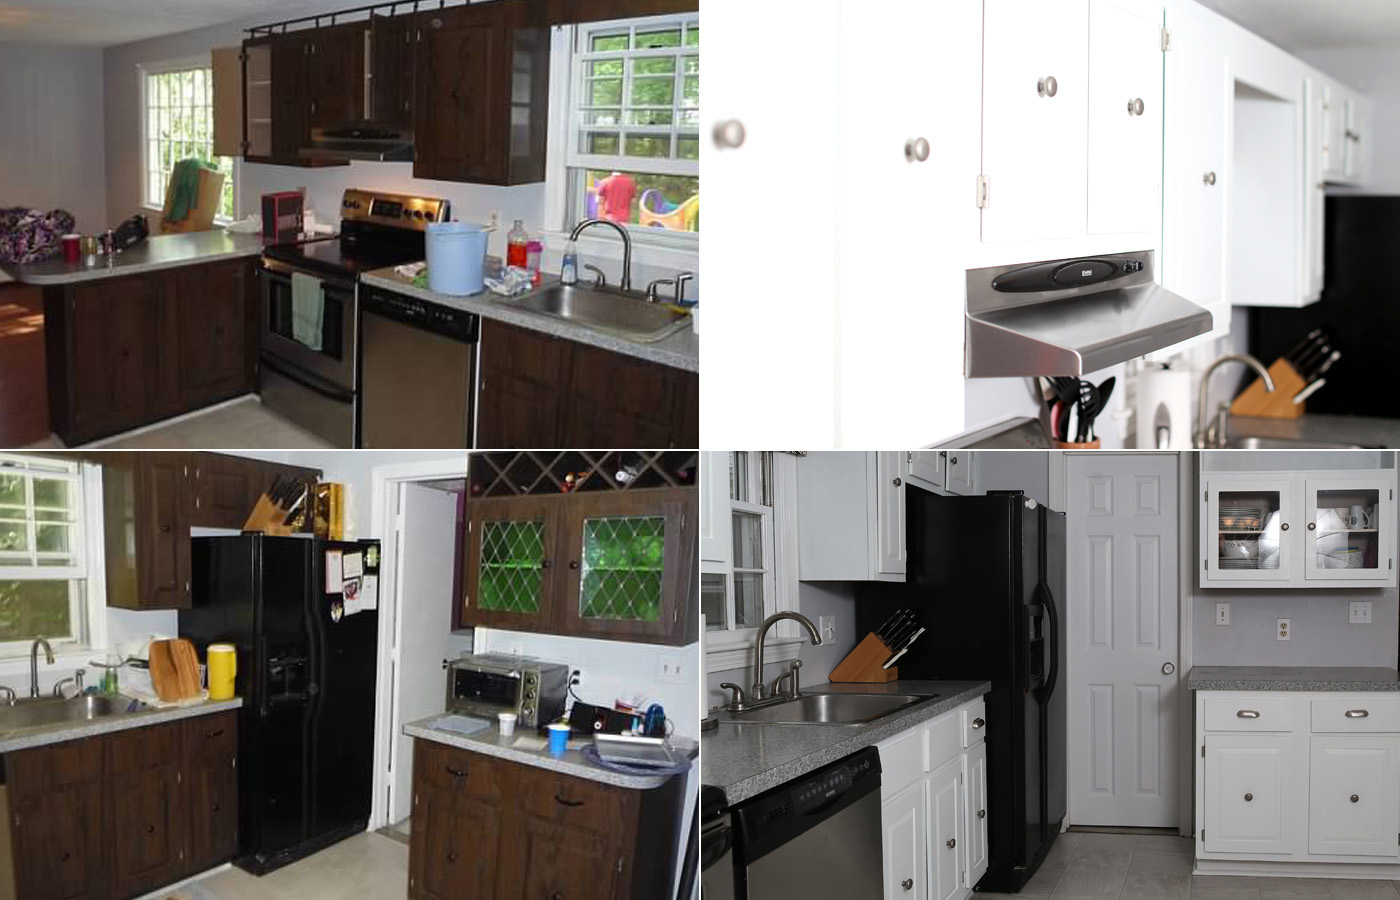 How To Take Down And Paint Your Kitchen Cabinets And Save A Bundle   Home  Improvement, Style   Boston.com Real Estate